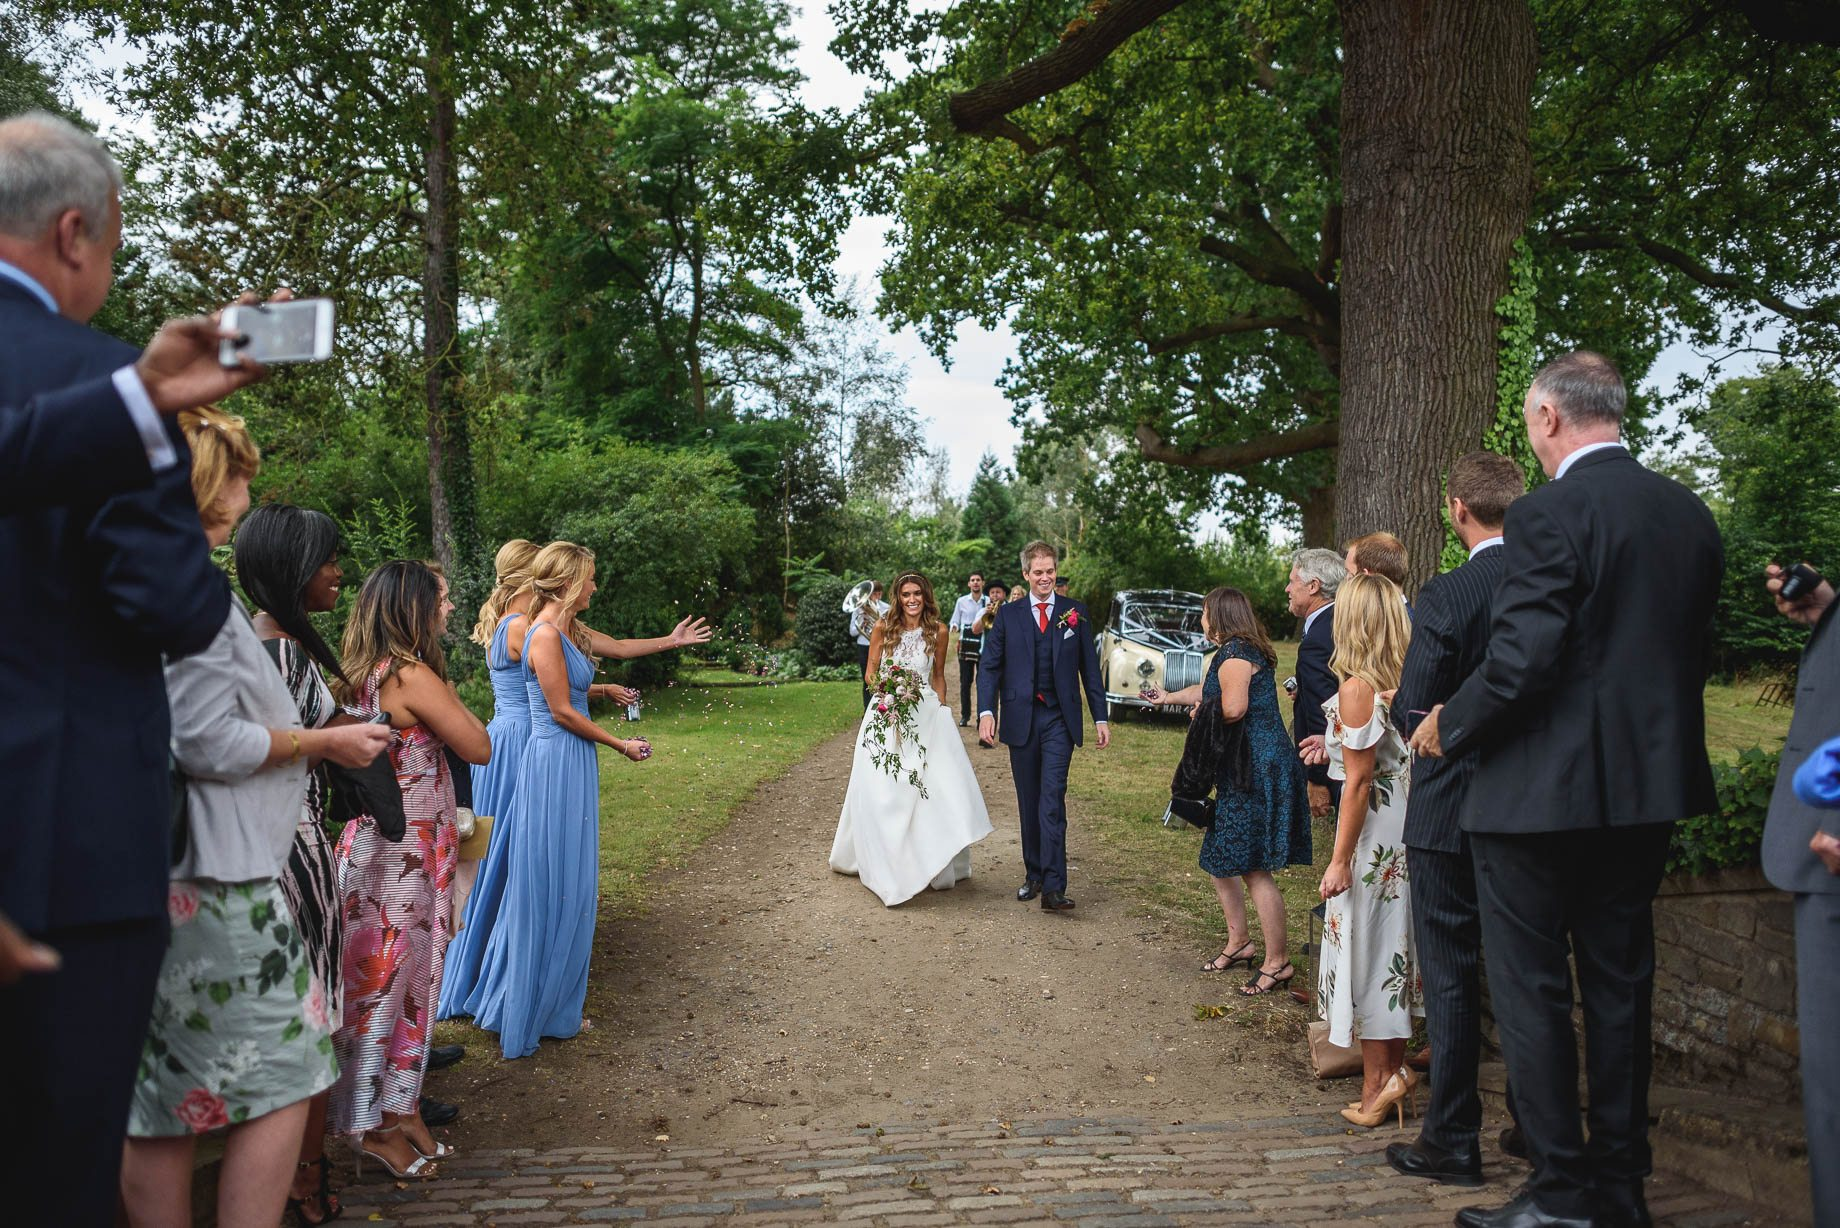 surrey-wedding-photography-guy-collier-photography-claire-and-tom-108-of-227